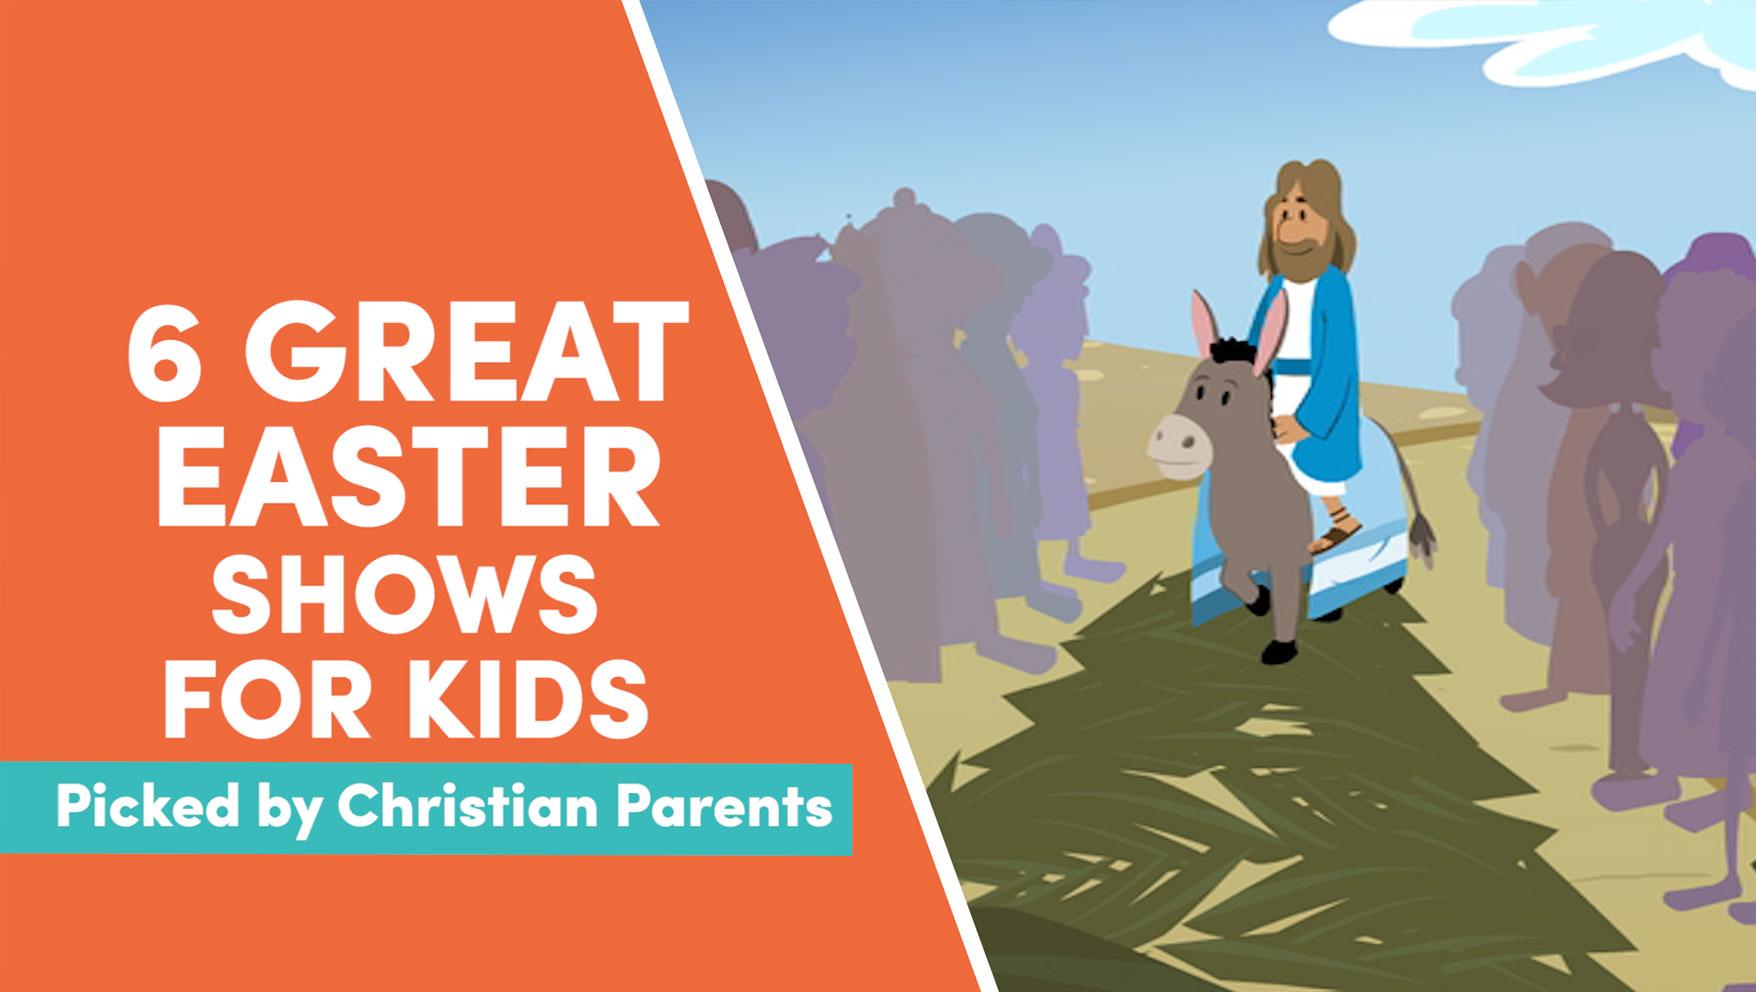 6 Great Easter Shows about Jesus for Kids